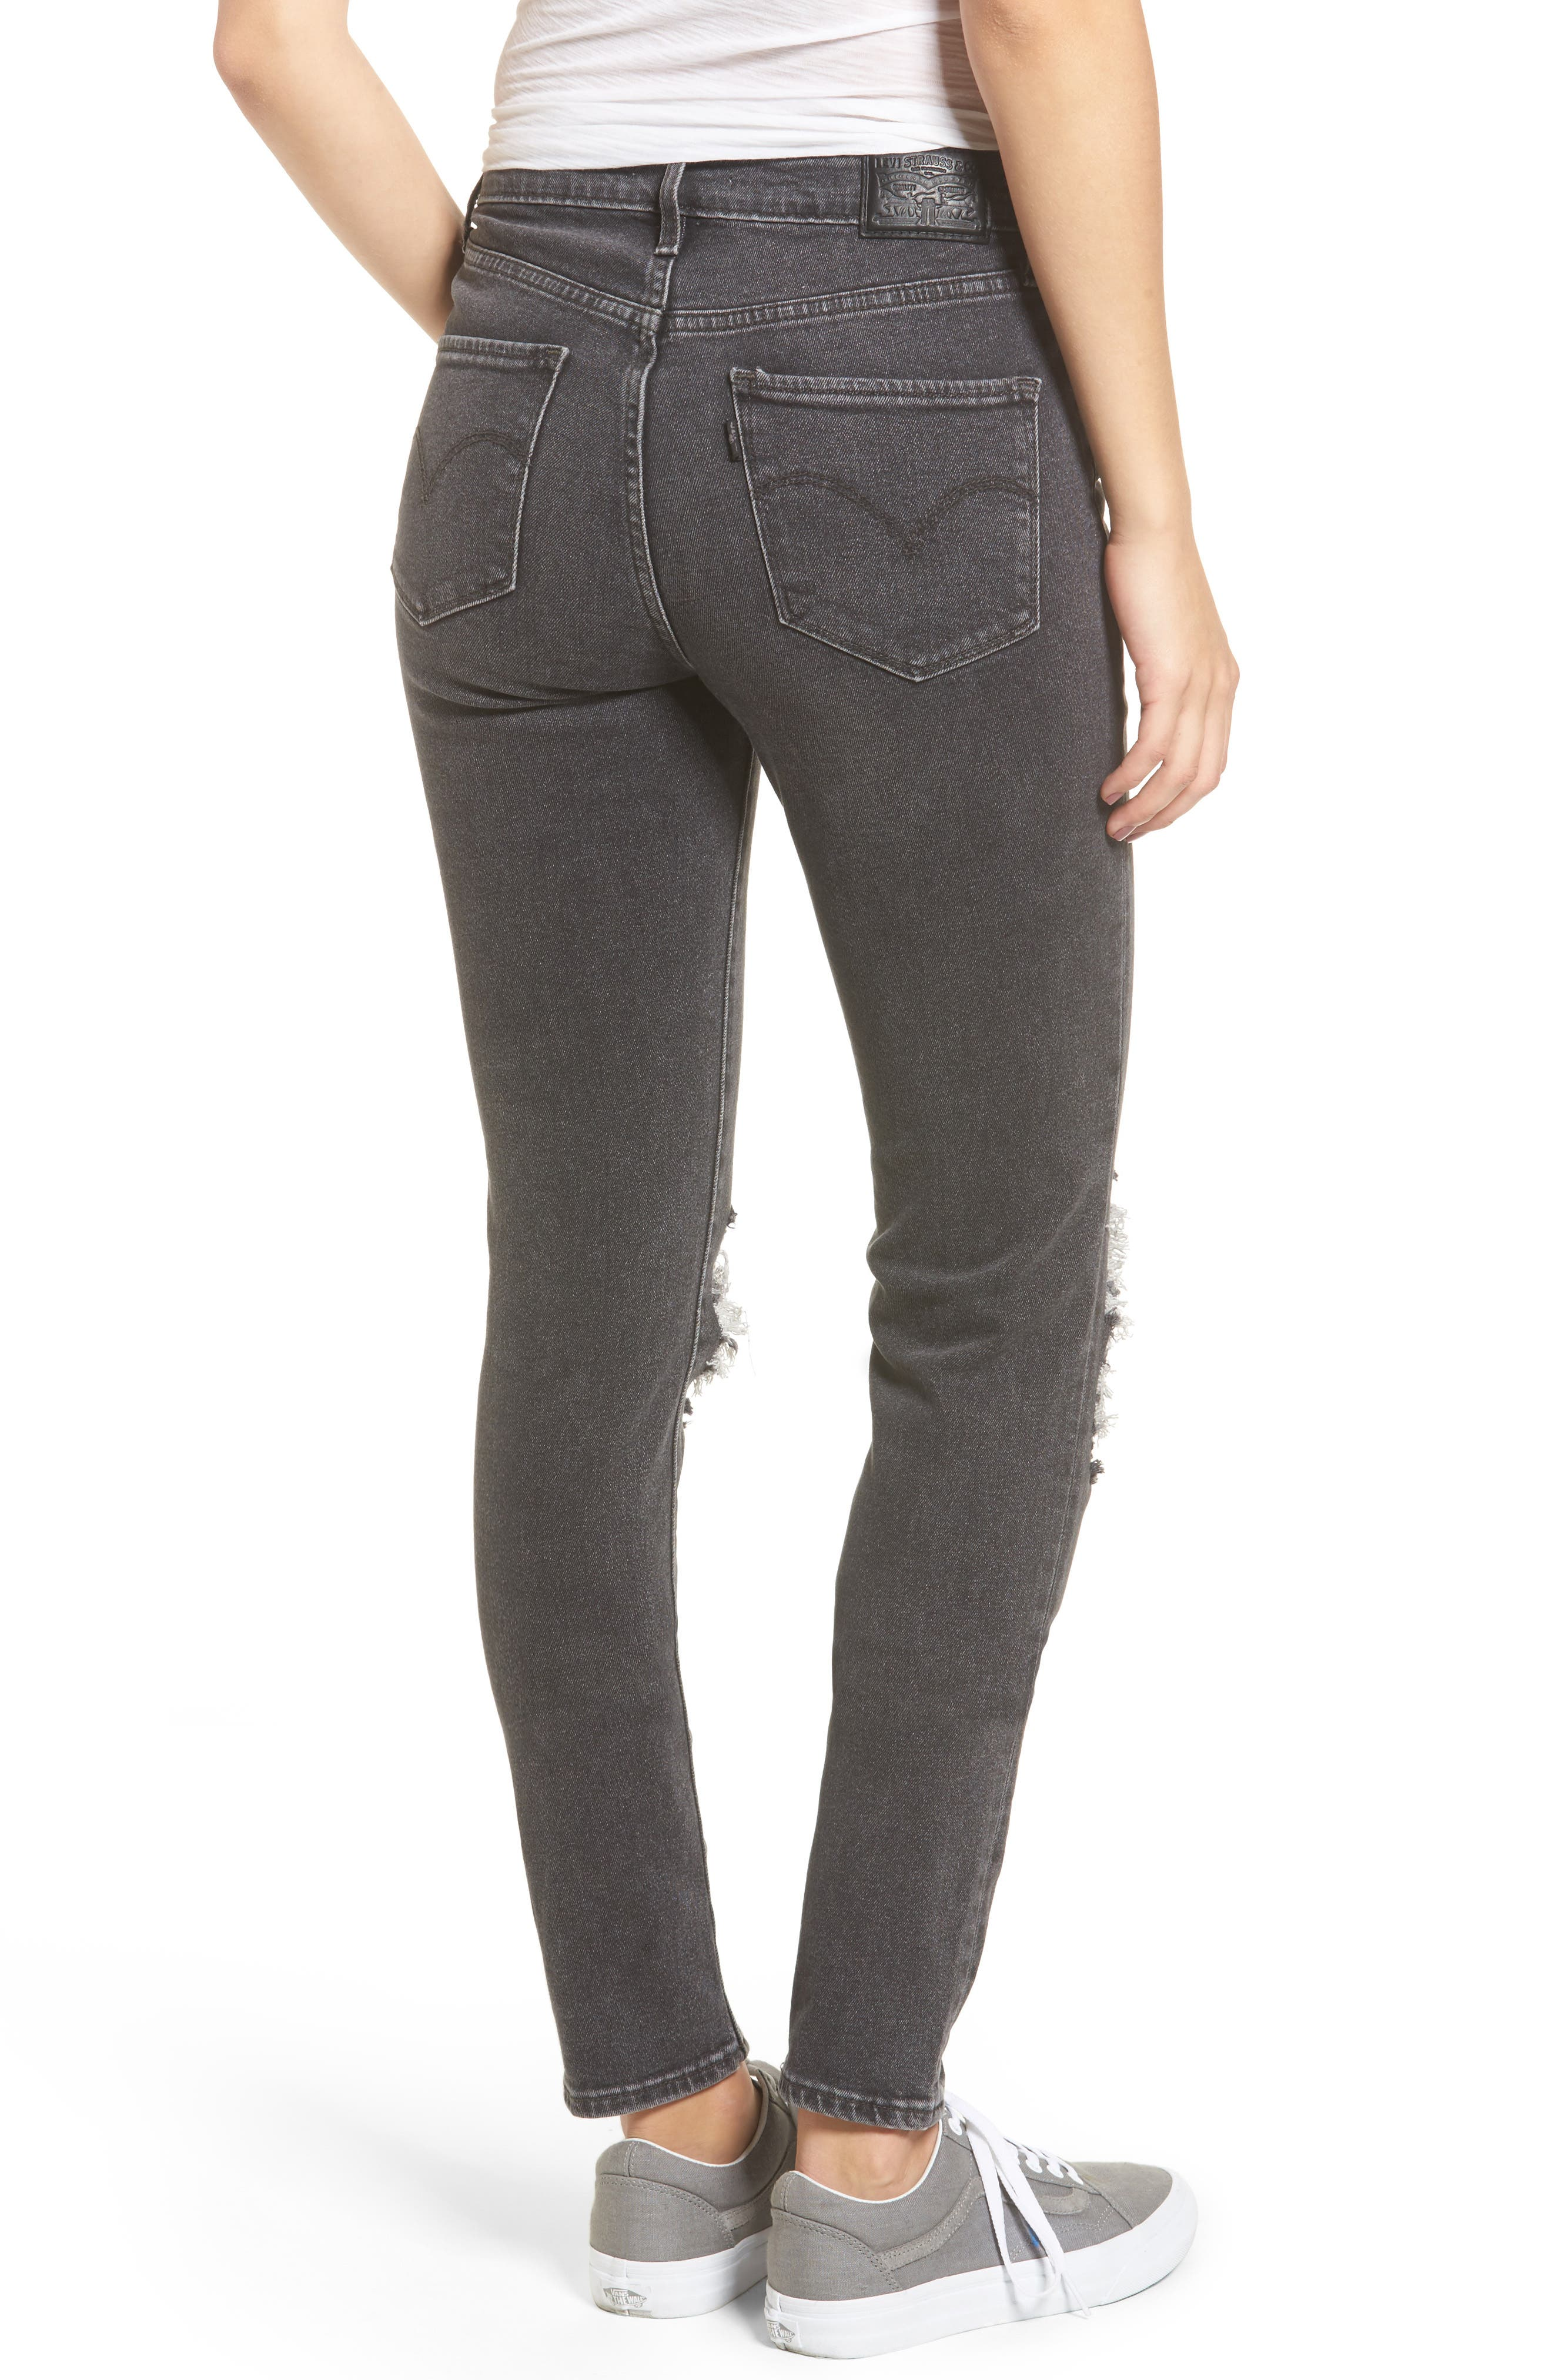 Alternate Image 2  - Levi's® 721 Ripped High Waist Skinny Jeans (Rugged Black)